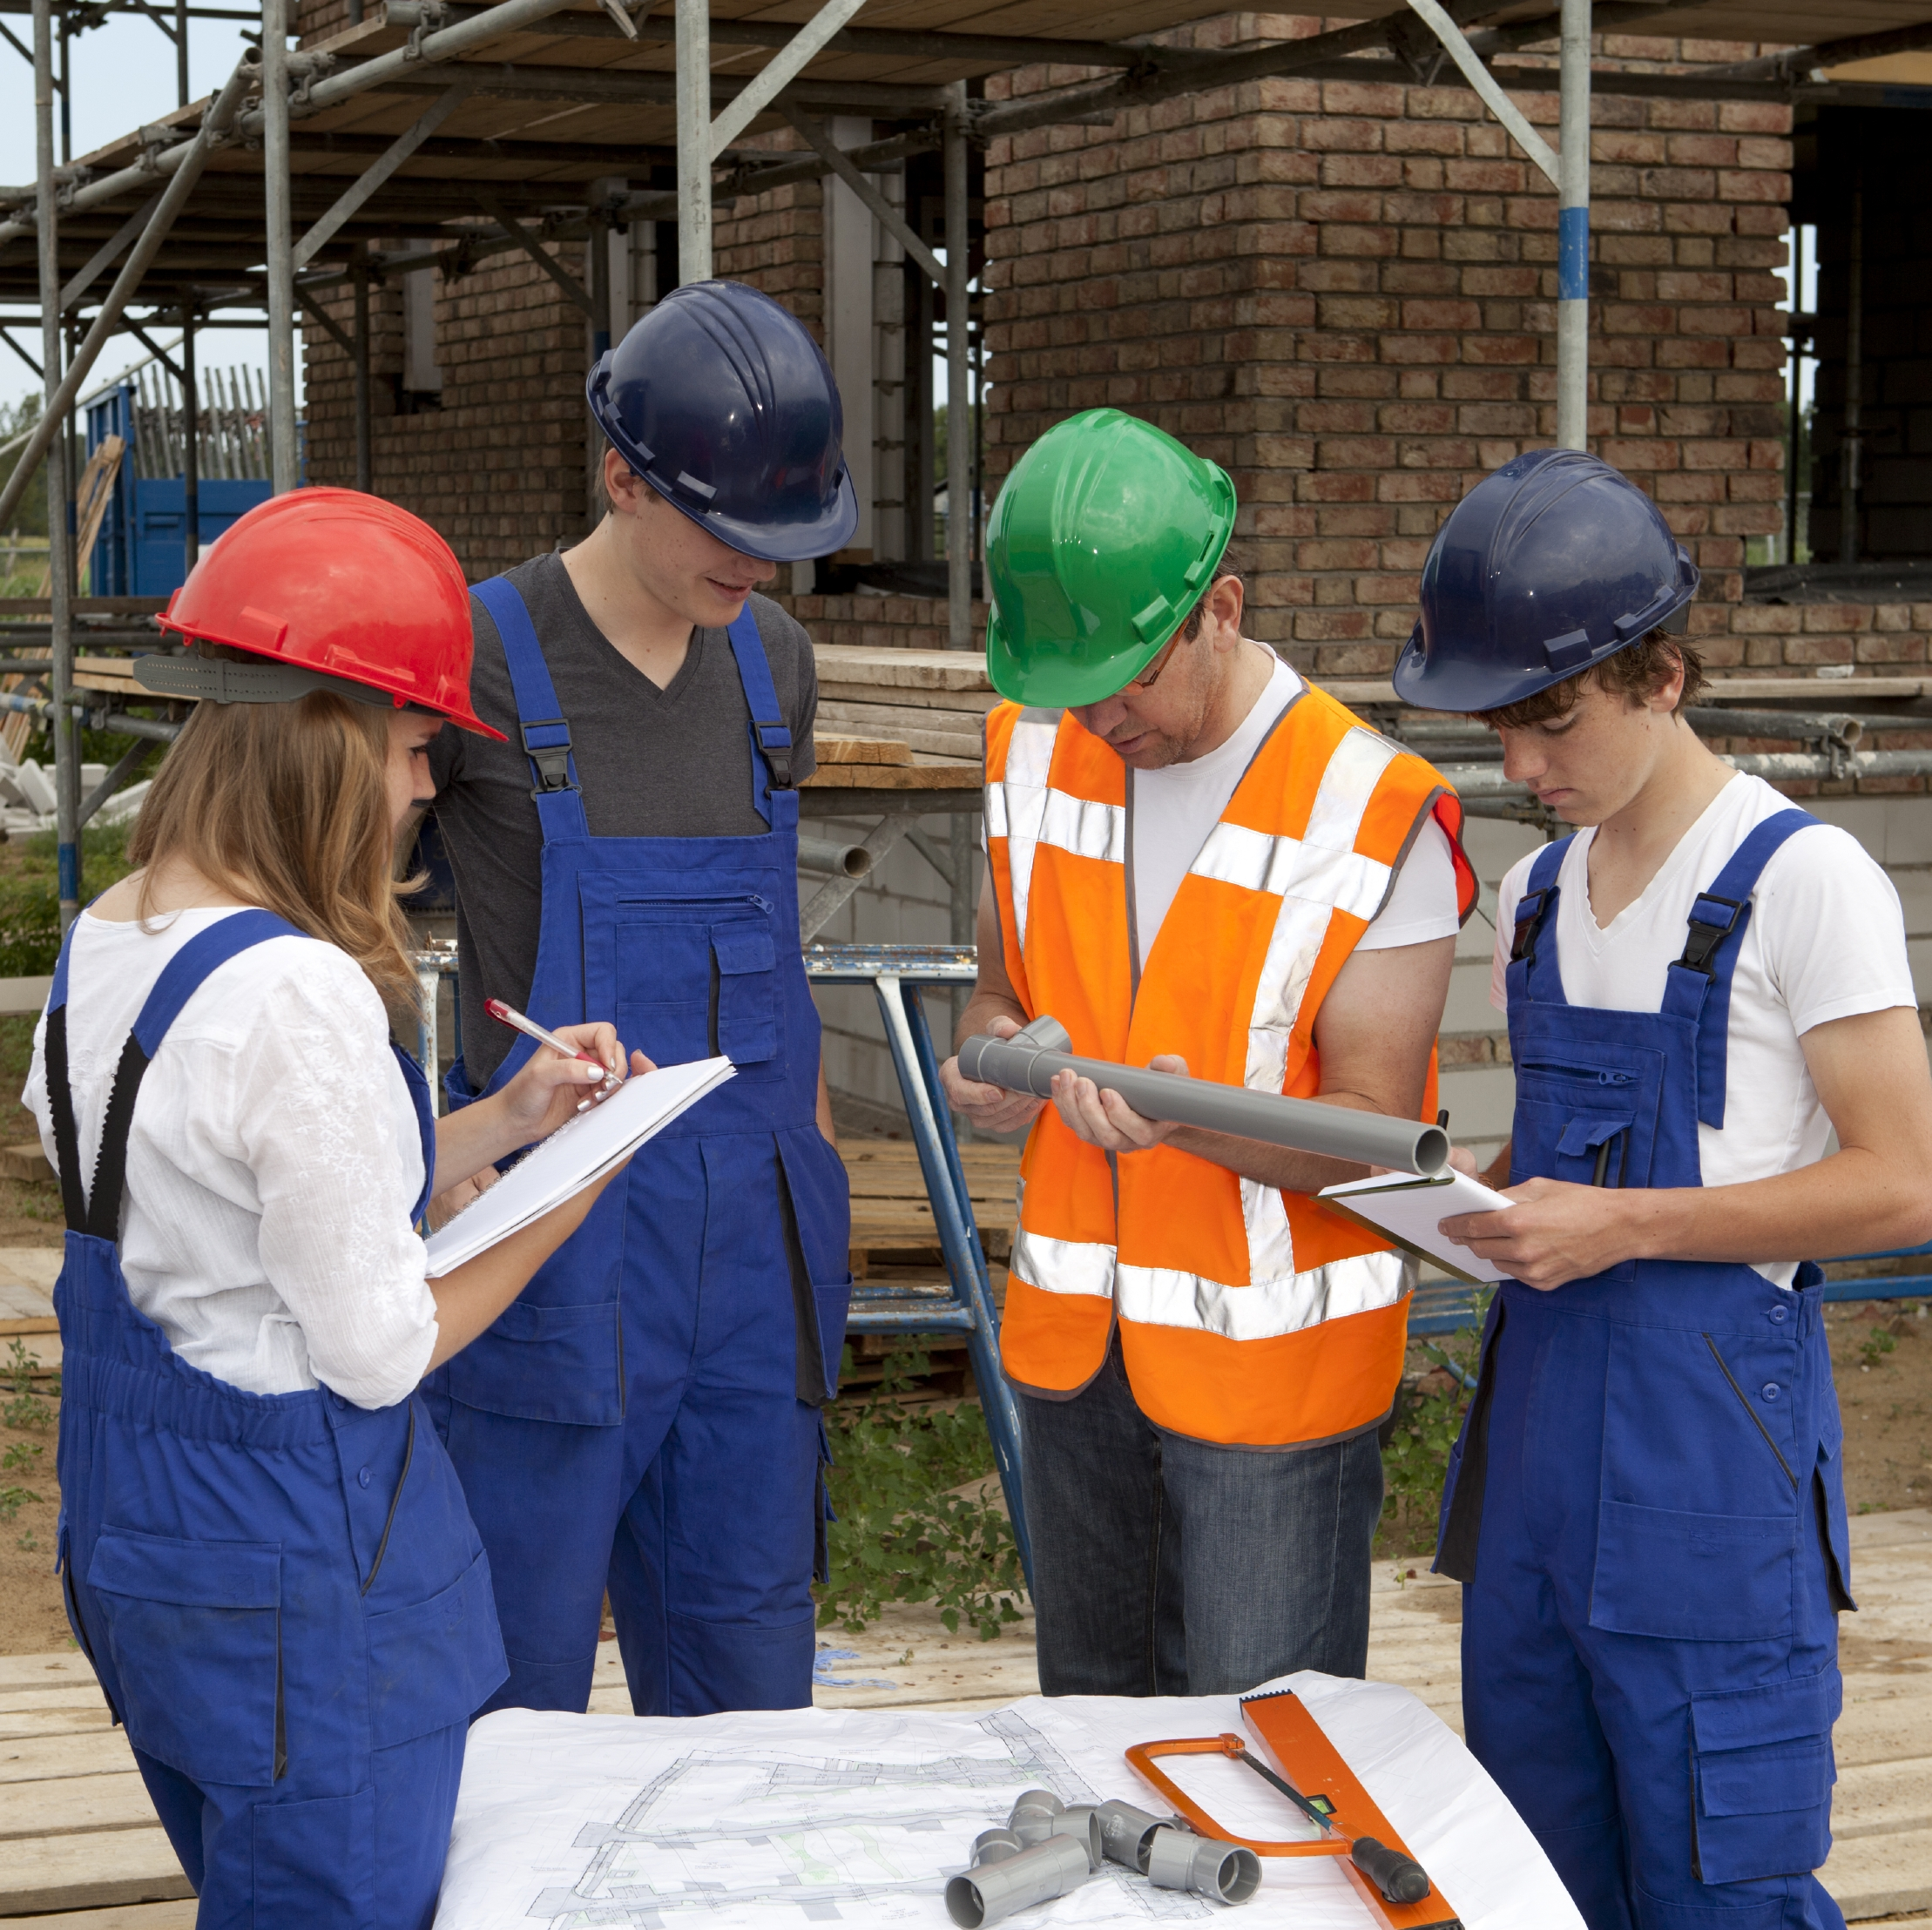 CITB Simplifies Access to £20 Million in Construction Training Funds